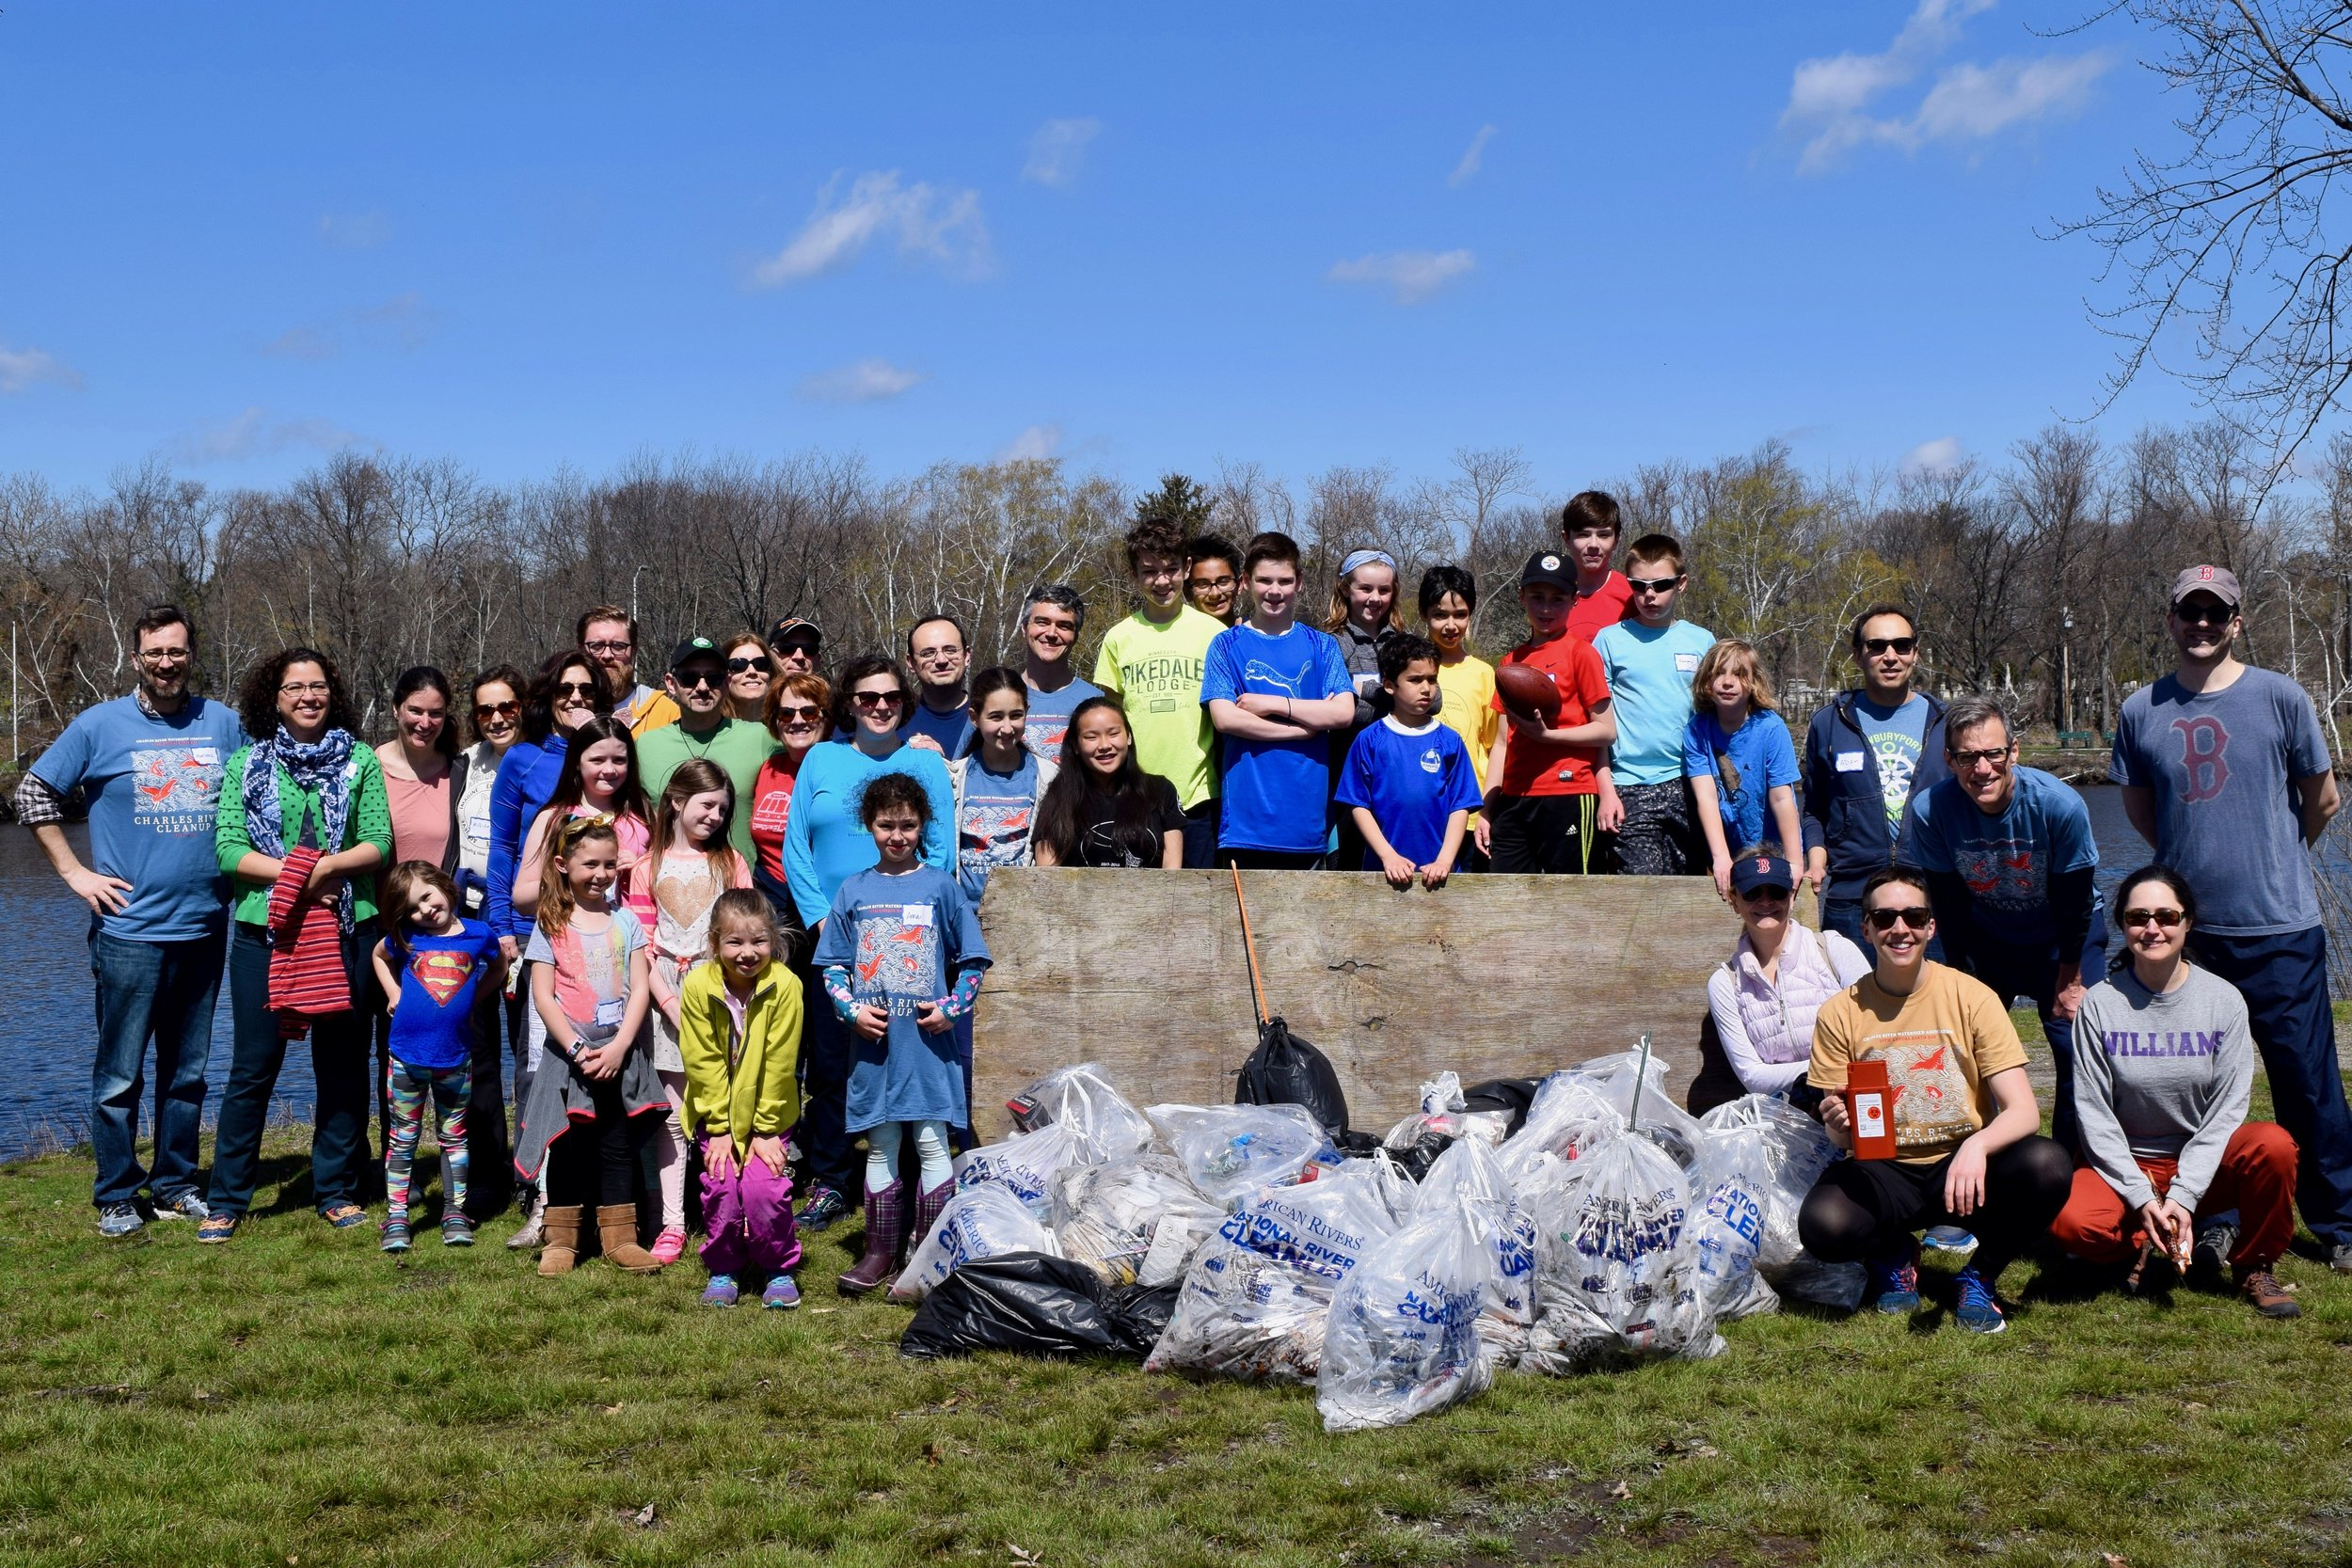 Atrium volunteers at the Charles River Cleanup, joined by event sponsor State Senator William N. Brownsberger (at right, in blue shirt and glasses).